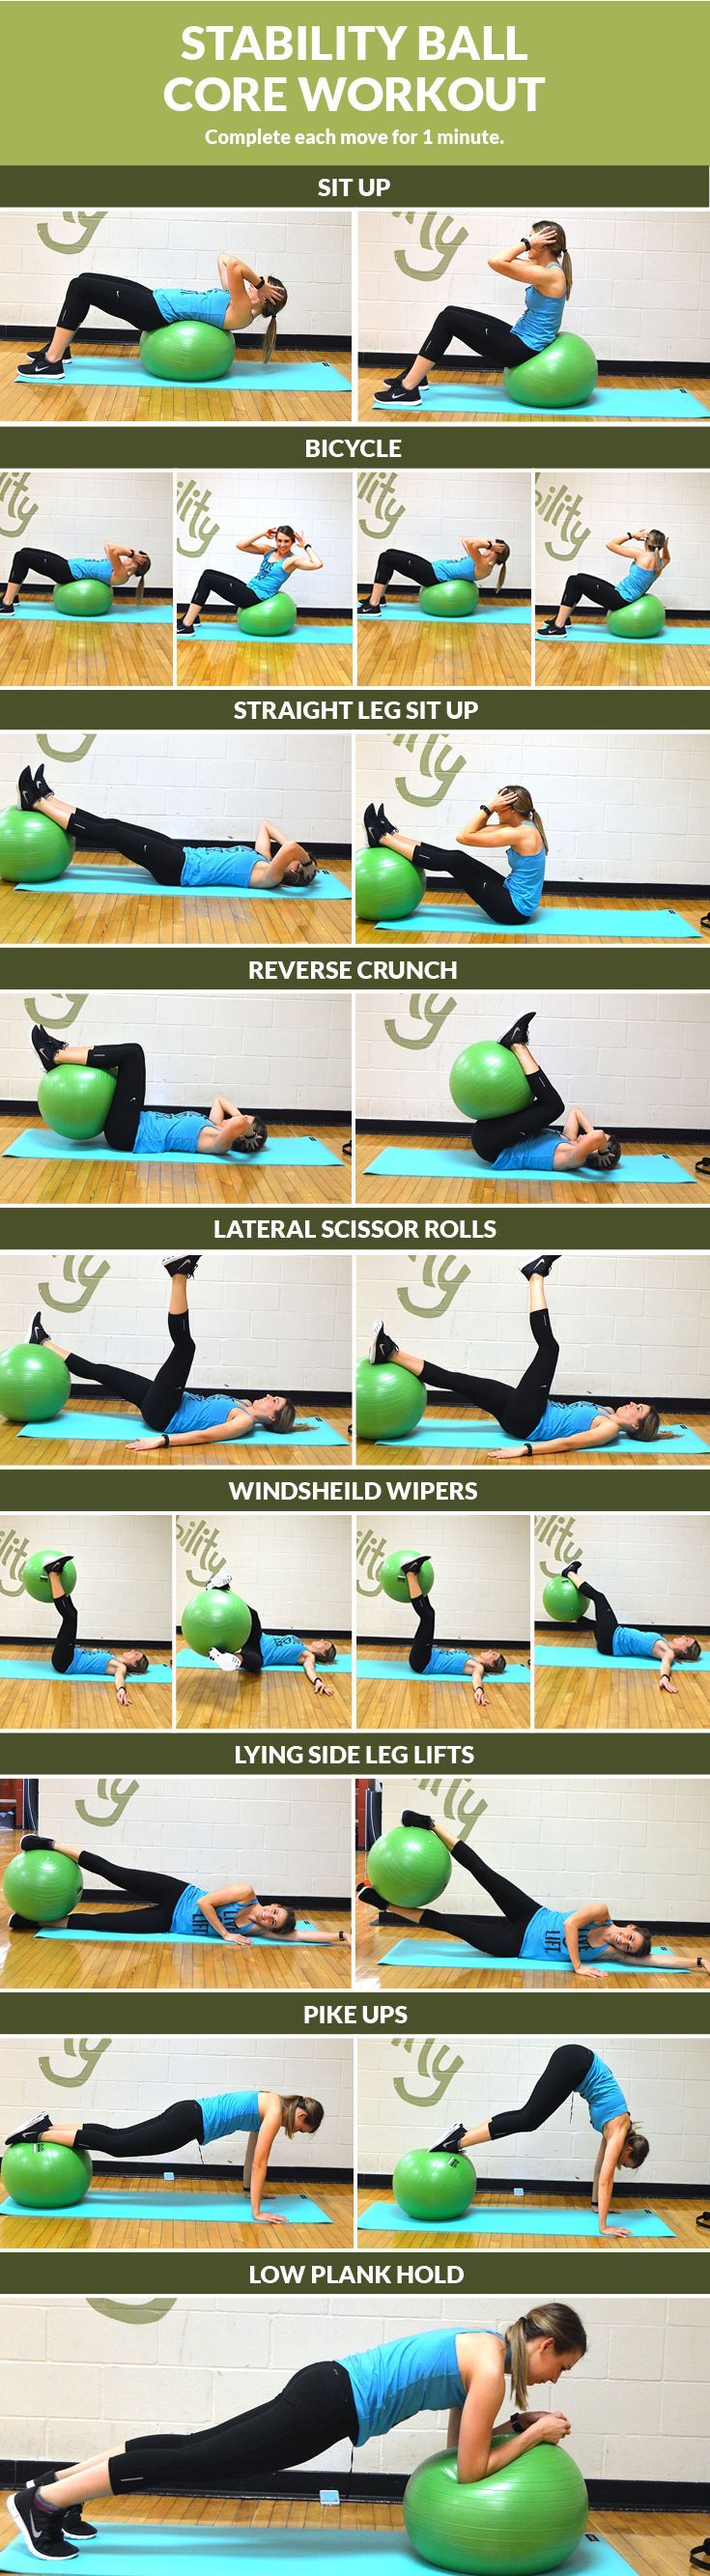 Stability Ball Core Workout | Posted by: AdvancedWeightLossTips.com